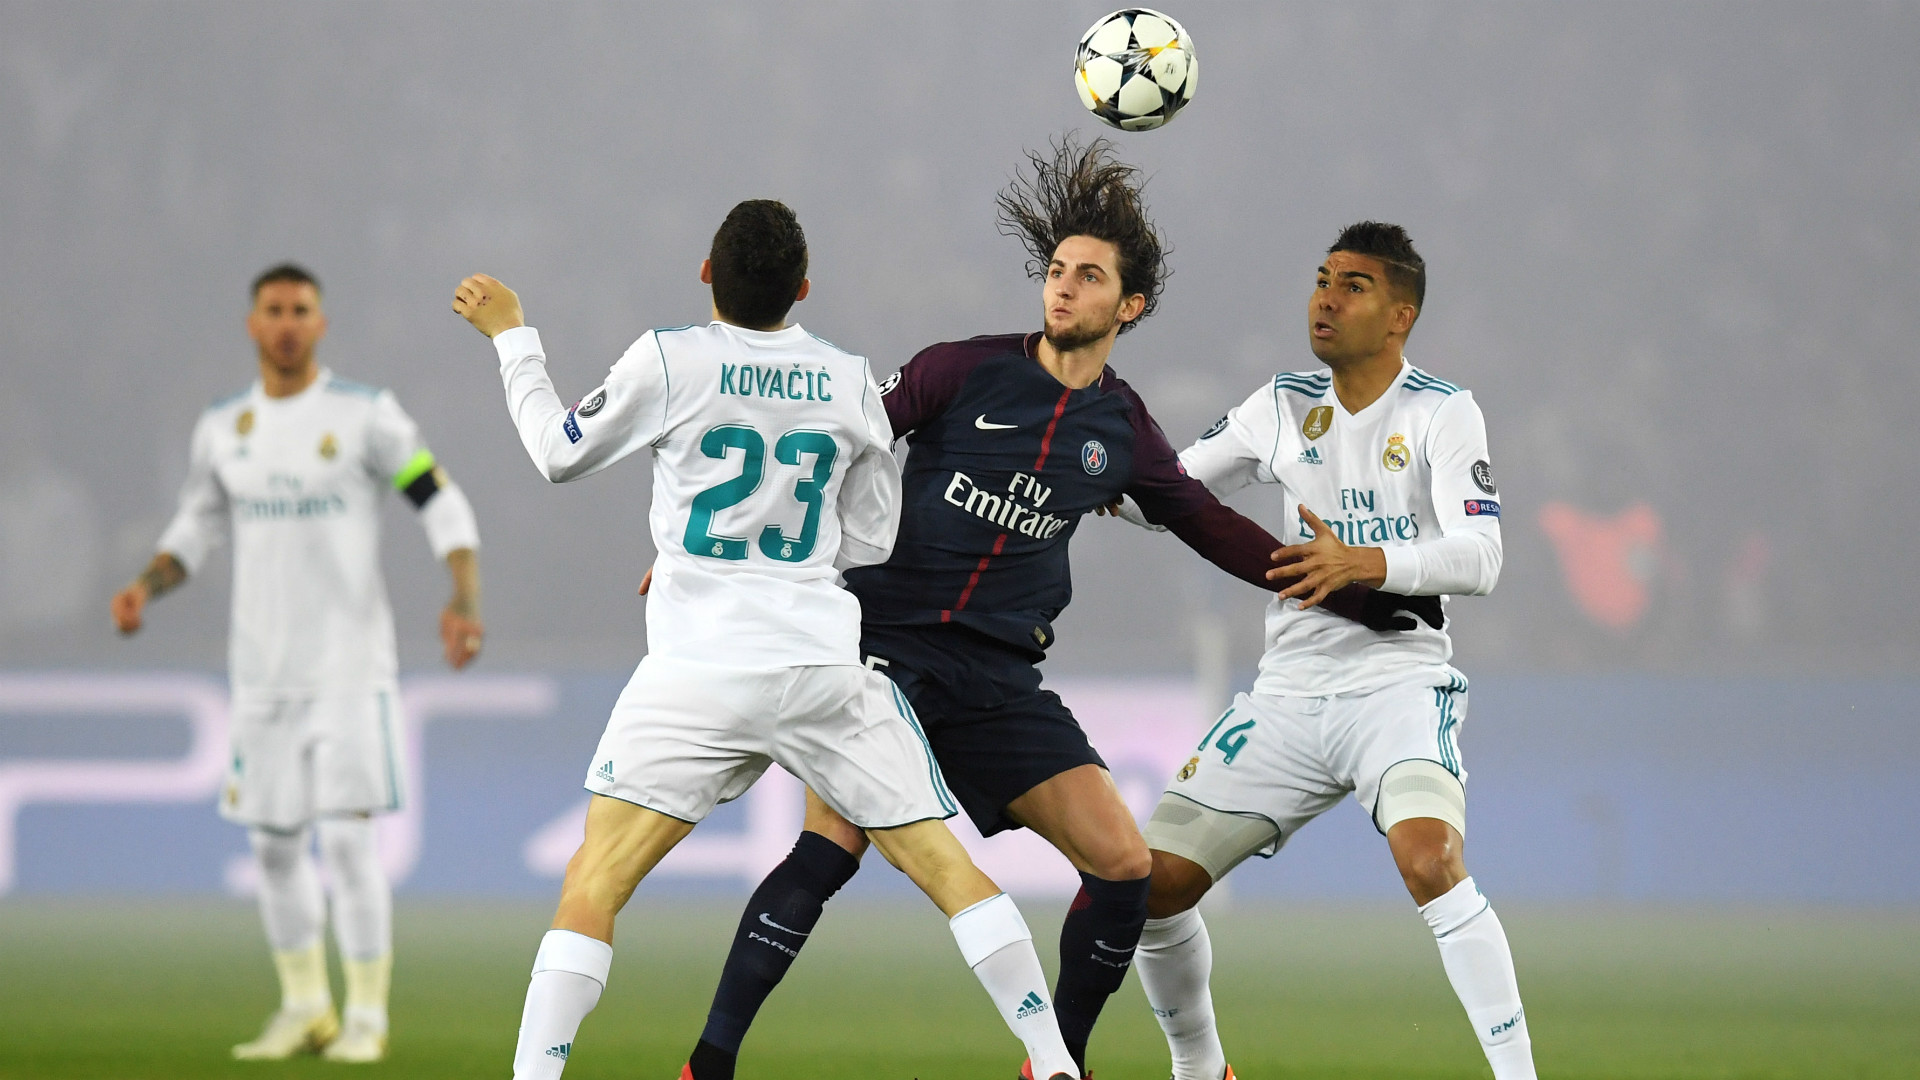 RABIOT CASEMIRO KOVACIC PSG REAL MADRID CHAMPIONS LEAGUE